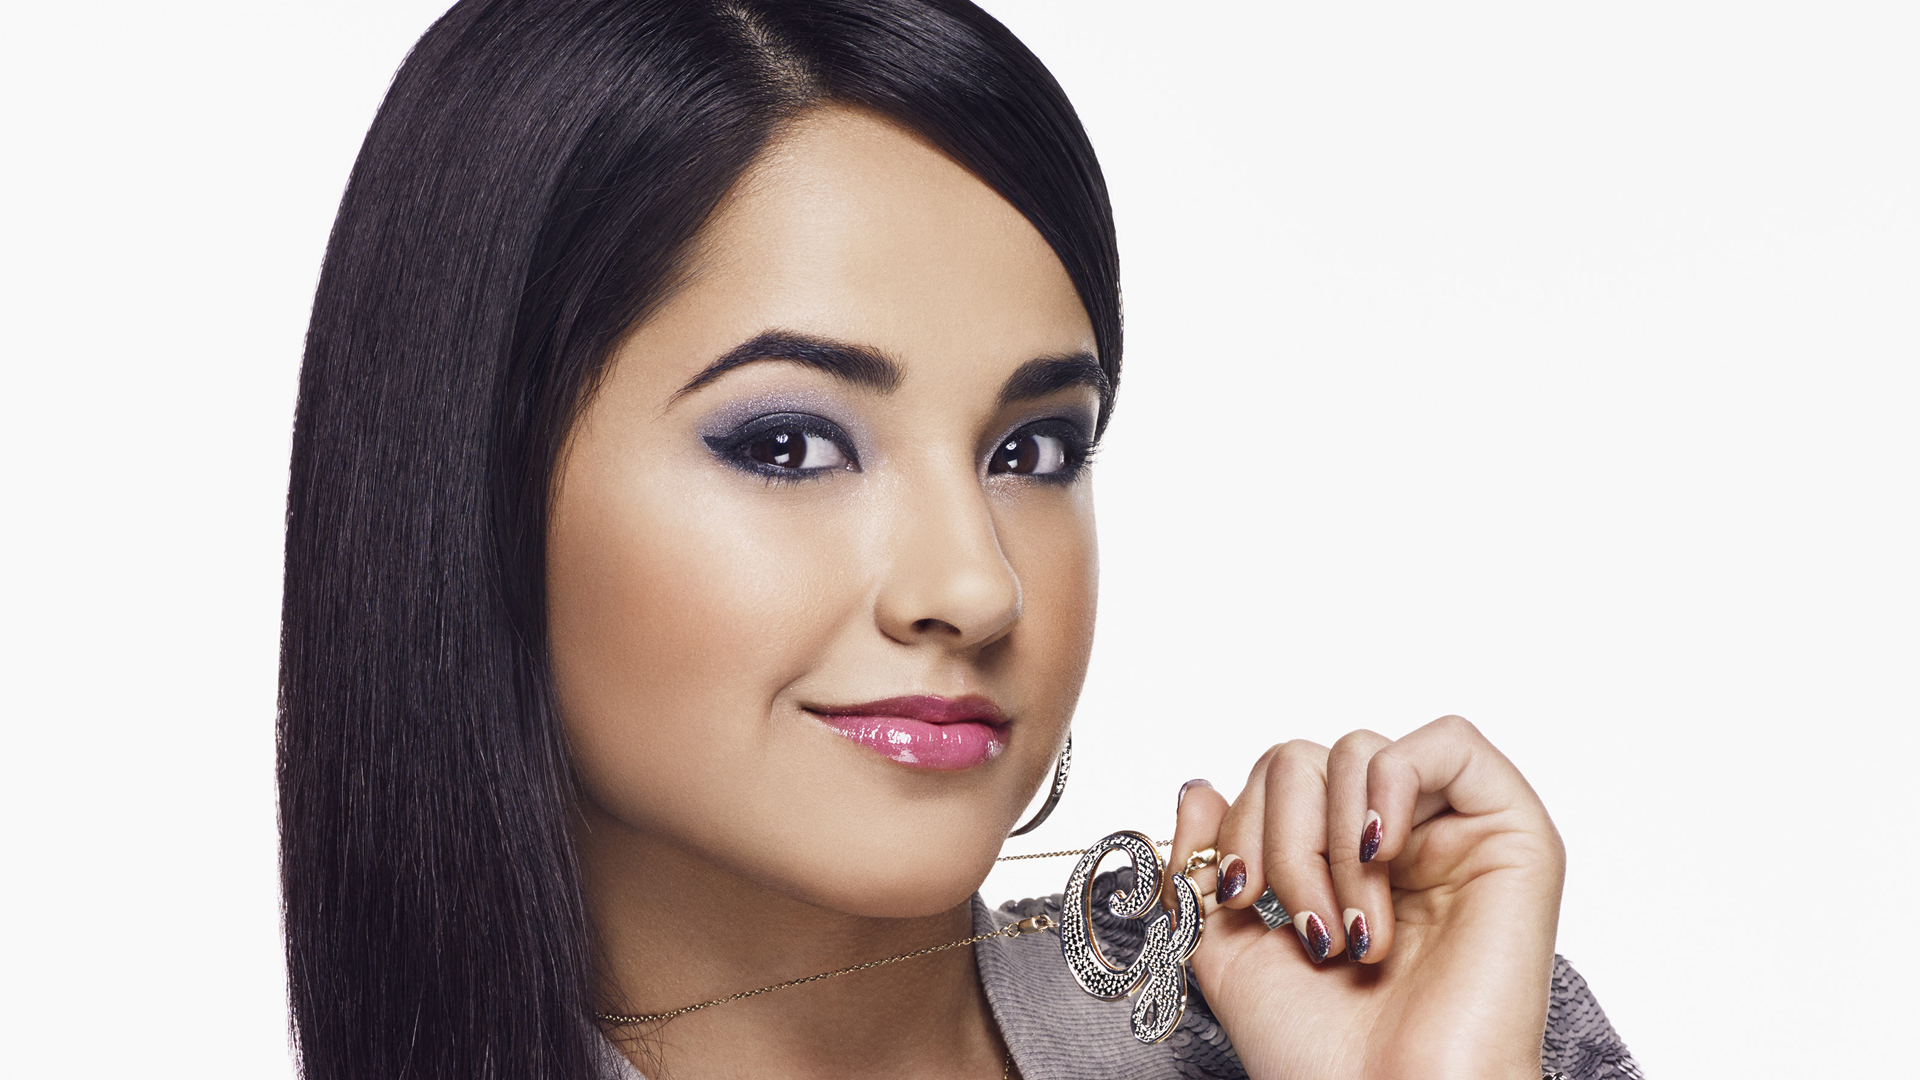 Becky G Wallpapers HD Backgrounds, Images, Pics, Photos Free ...